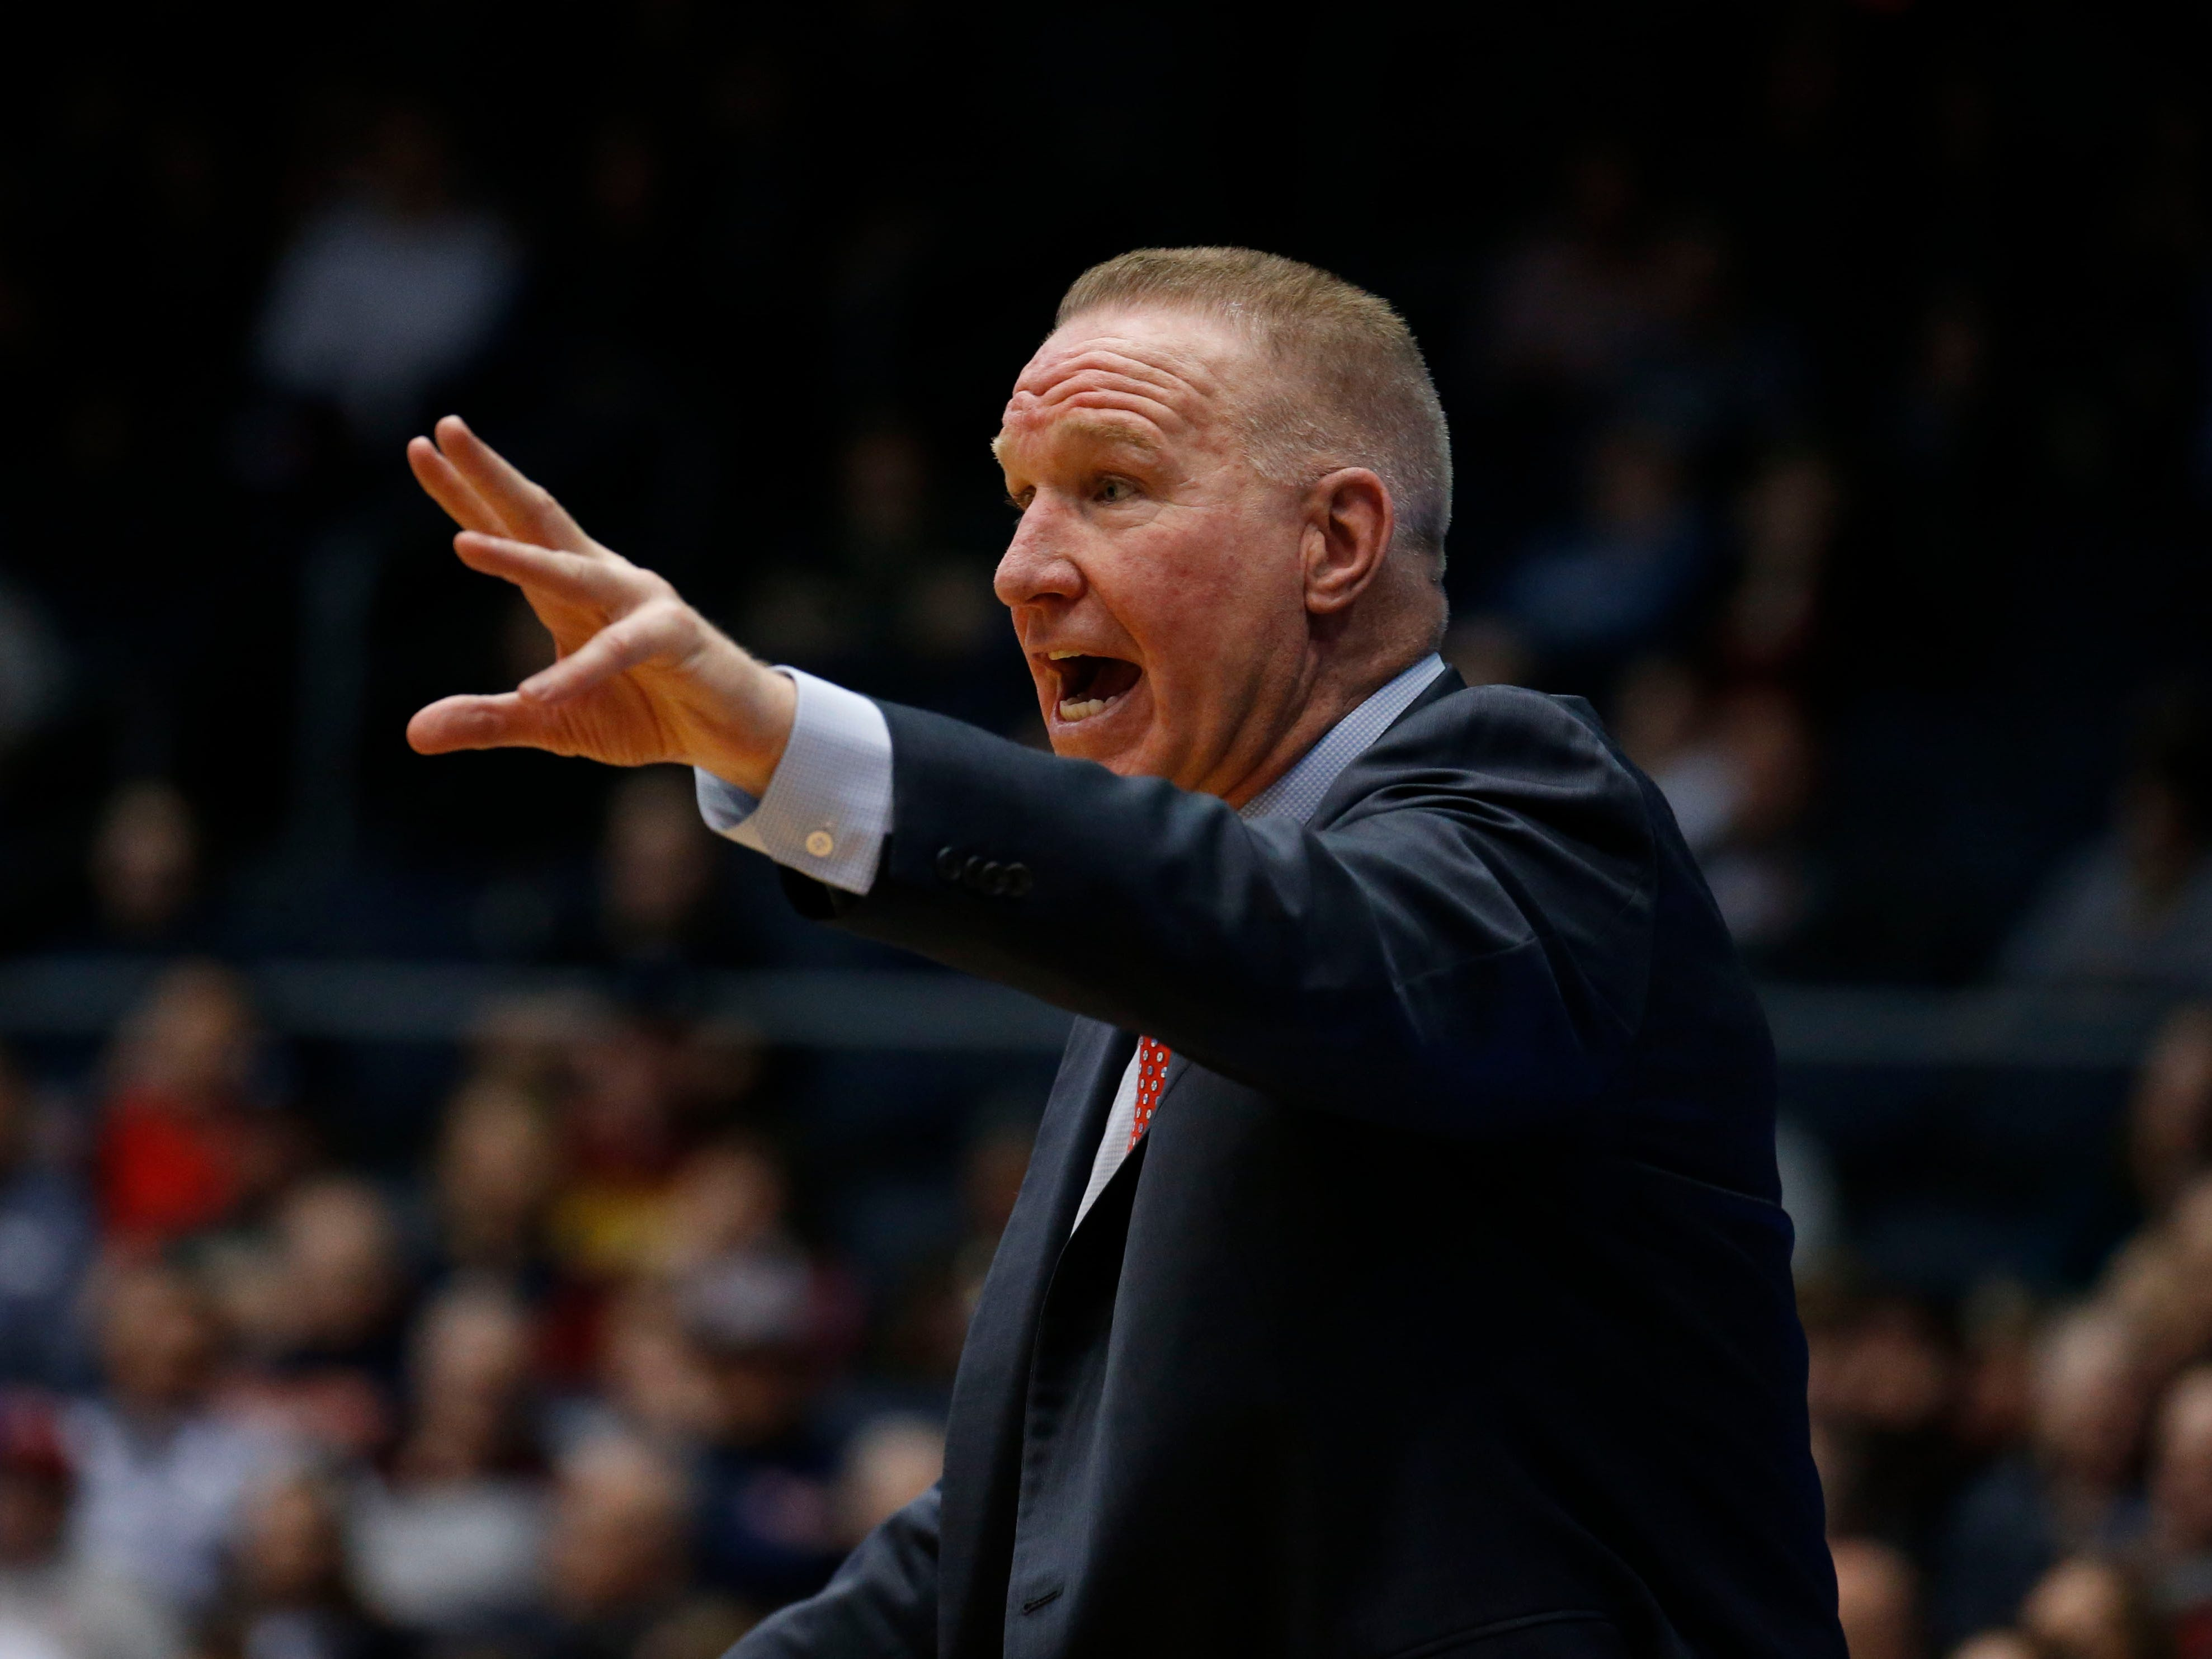 Mar 20, 2019; Dayton, OH, USA; St. John's Red Storm head coach Chris Mullin reacts to a play in the second half against the Arizona State Sun Devils in the First Four of the 2019 NCAA Tournament at Dayton Arena. Mandatory Credit: Brian Spurlock-USA TODAY Sports